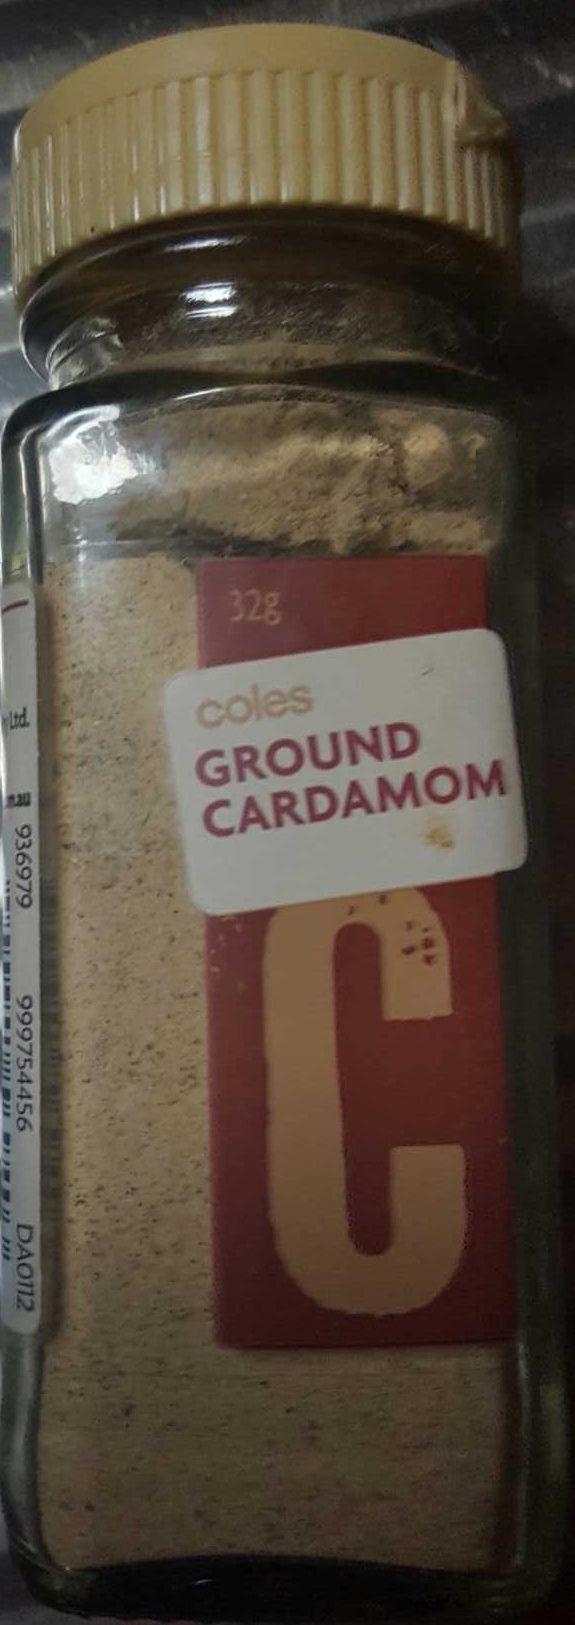 Coles Ground Cardamom - Product - en